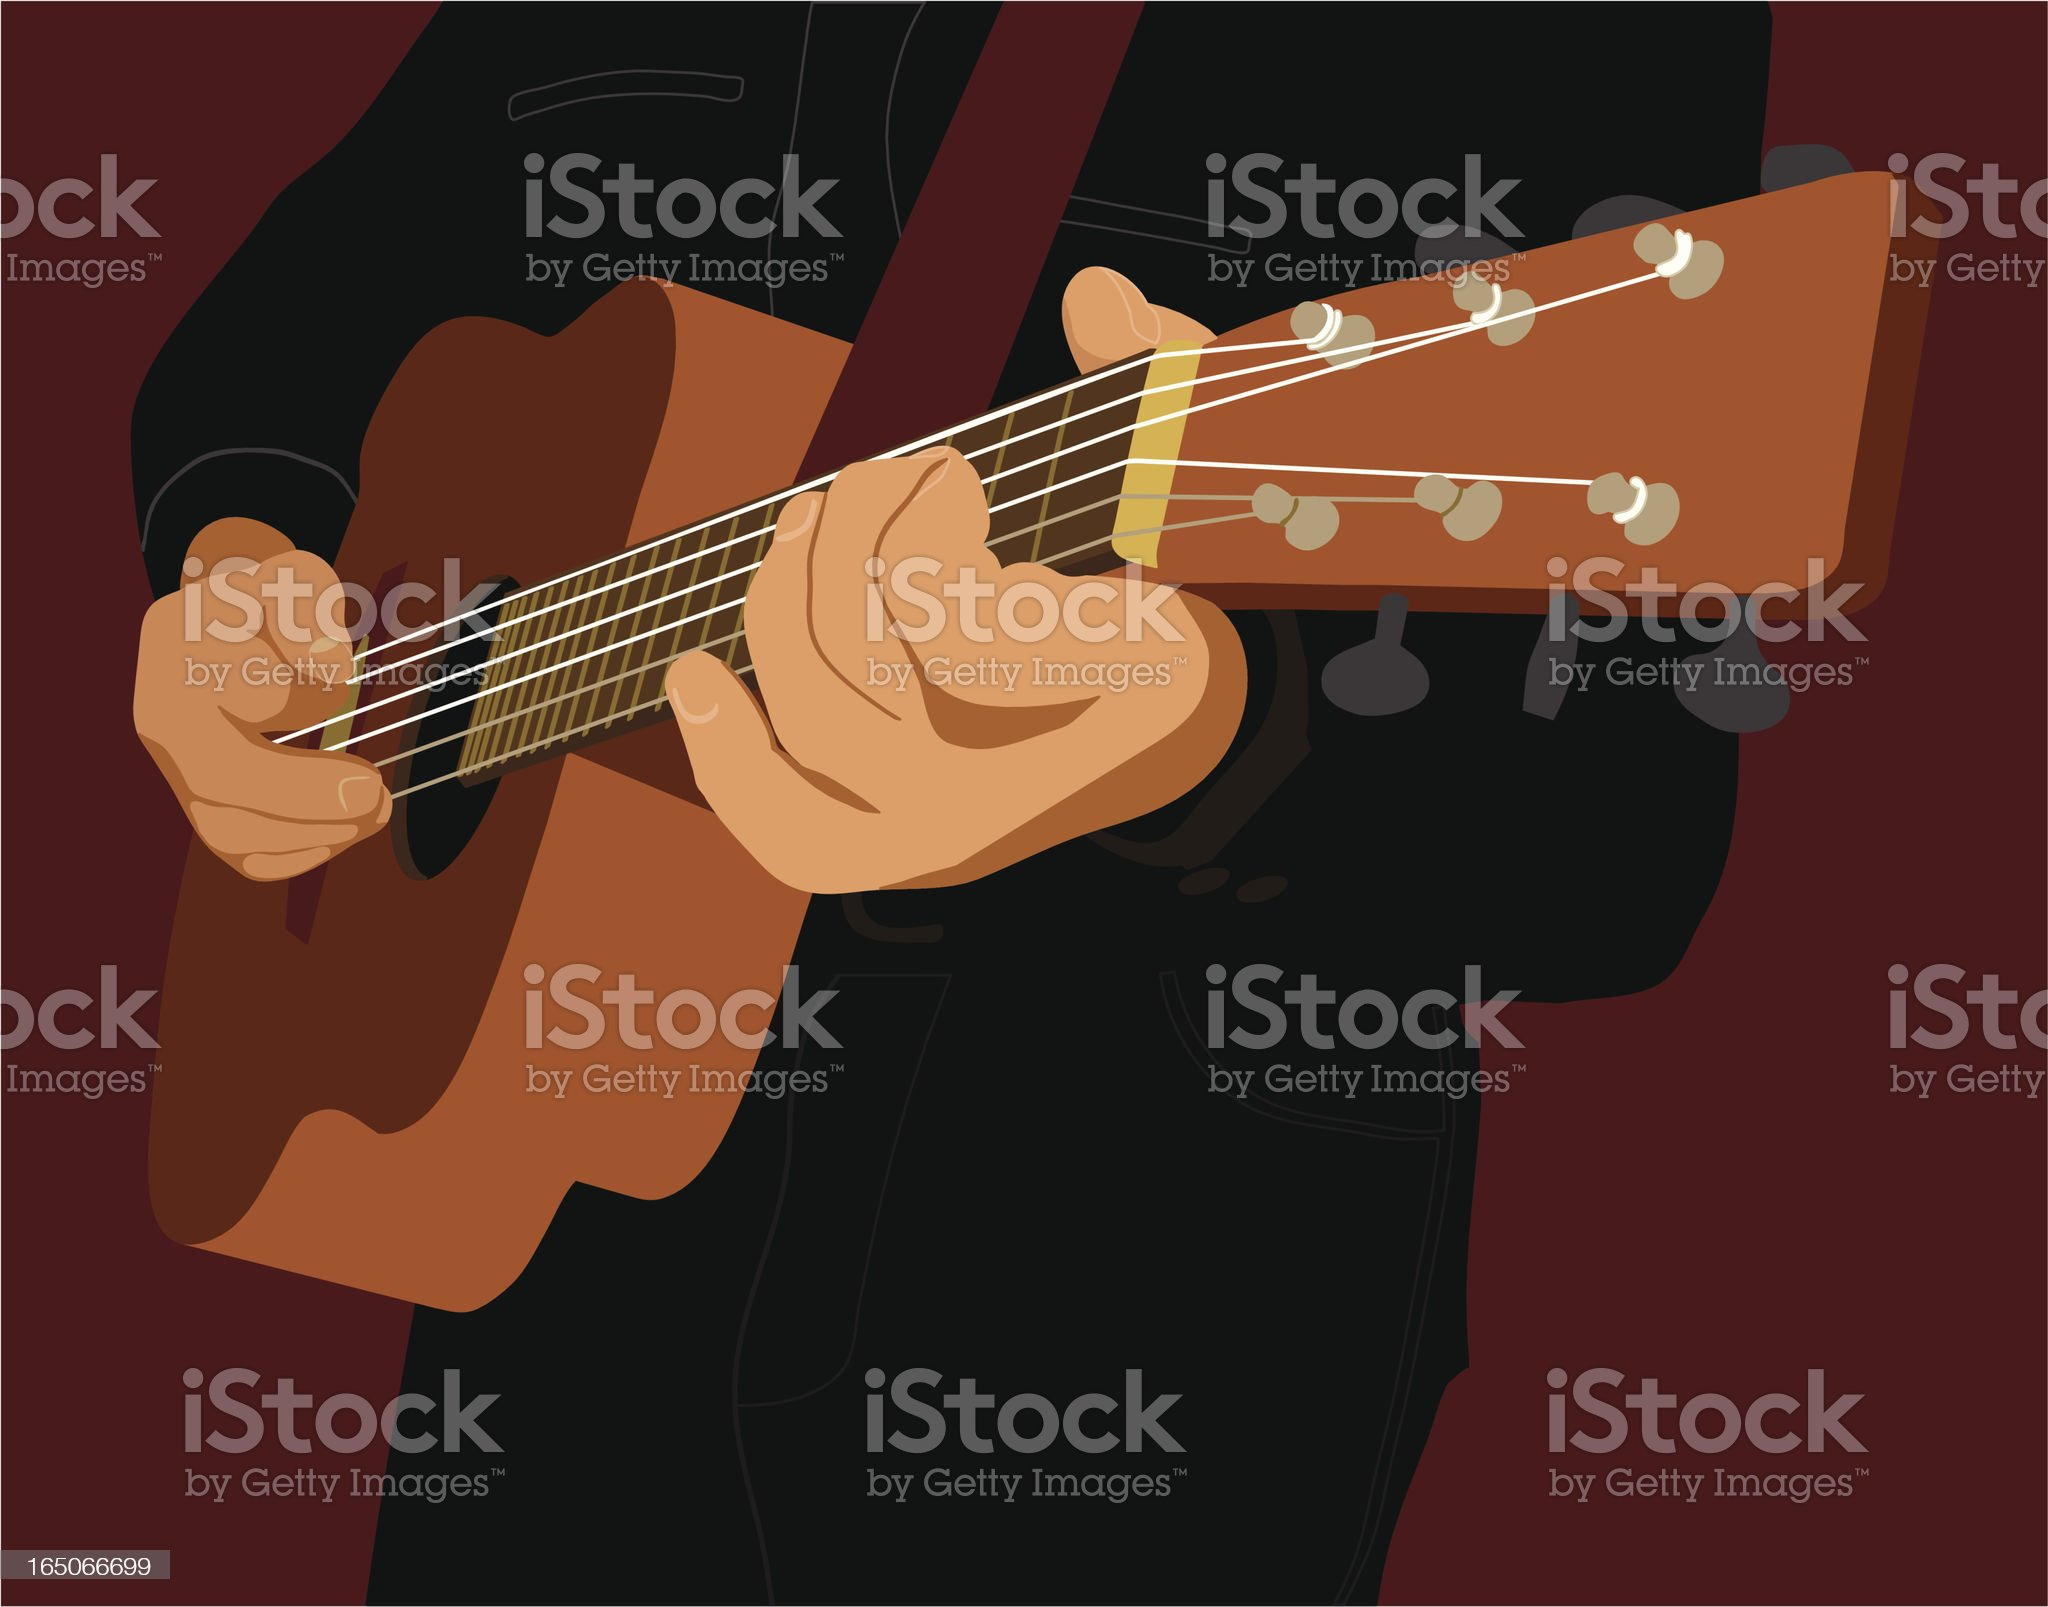 Fingers at Guitar royalty-free stock vector art